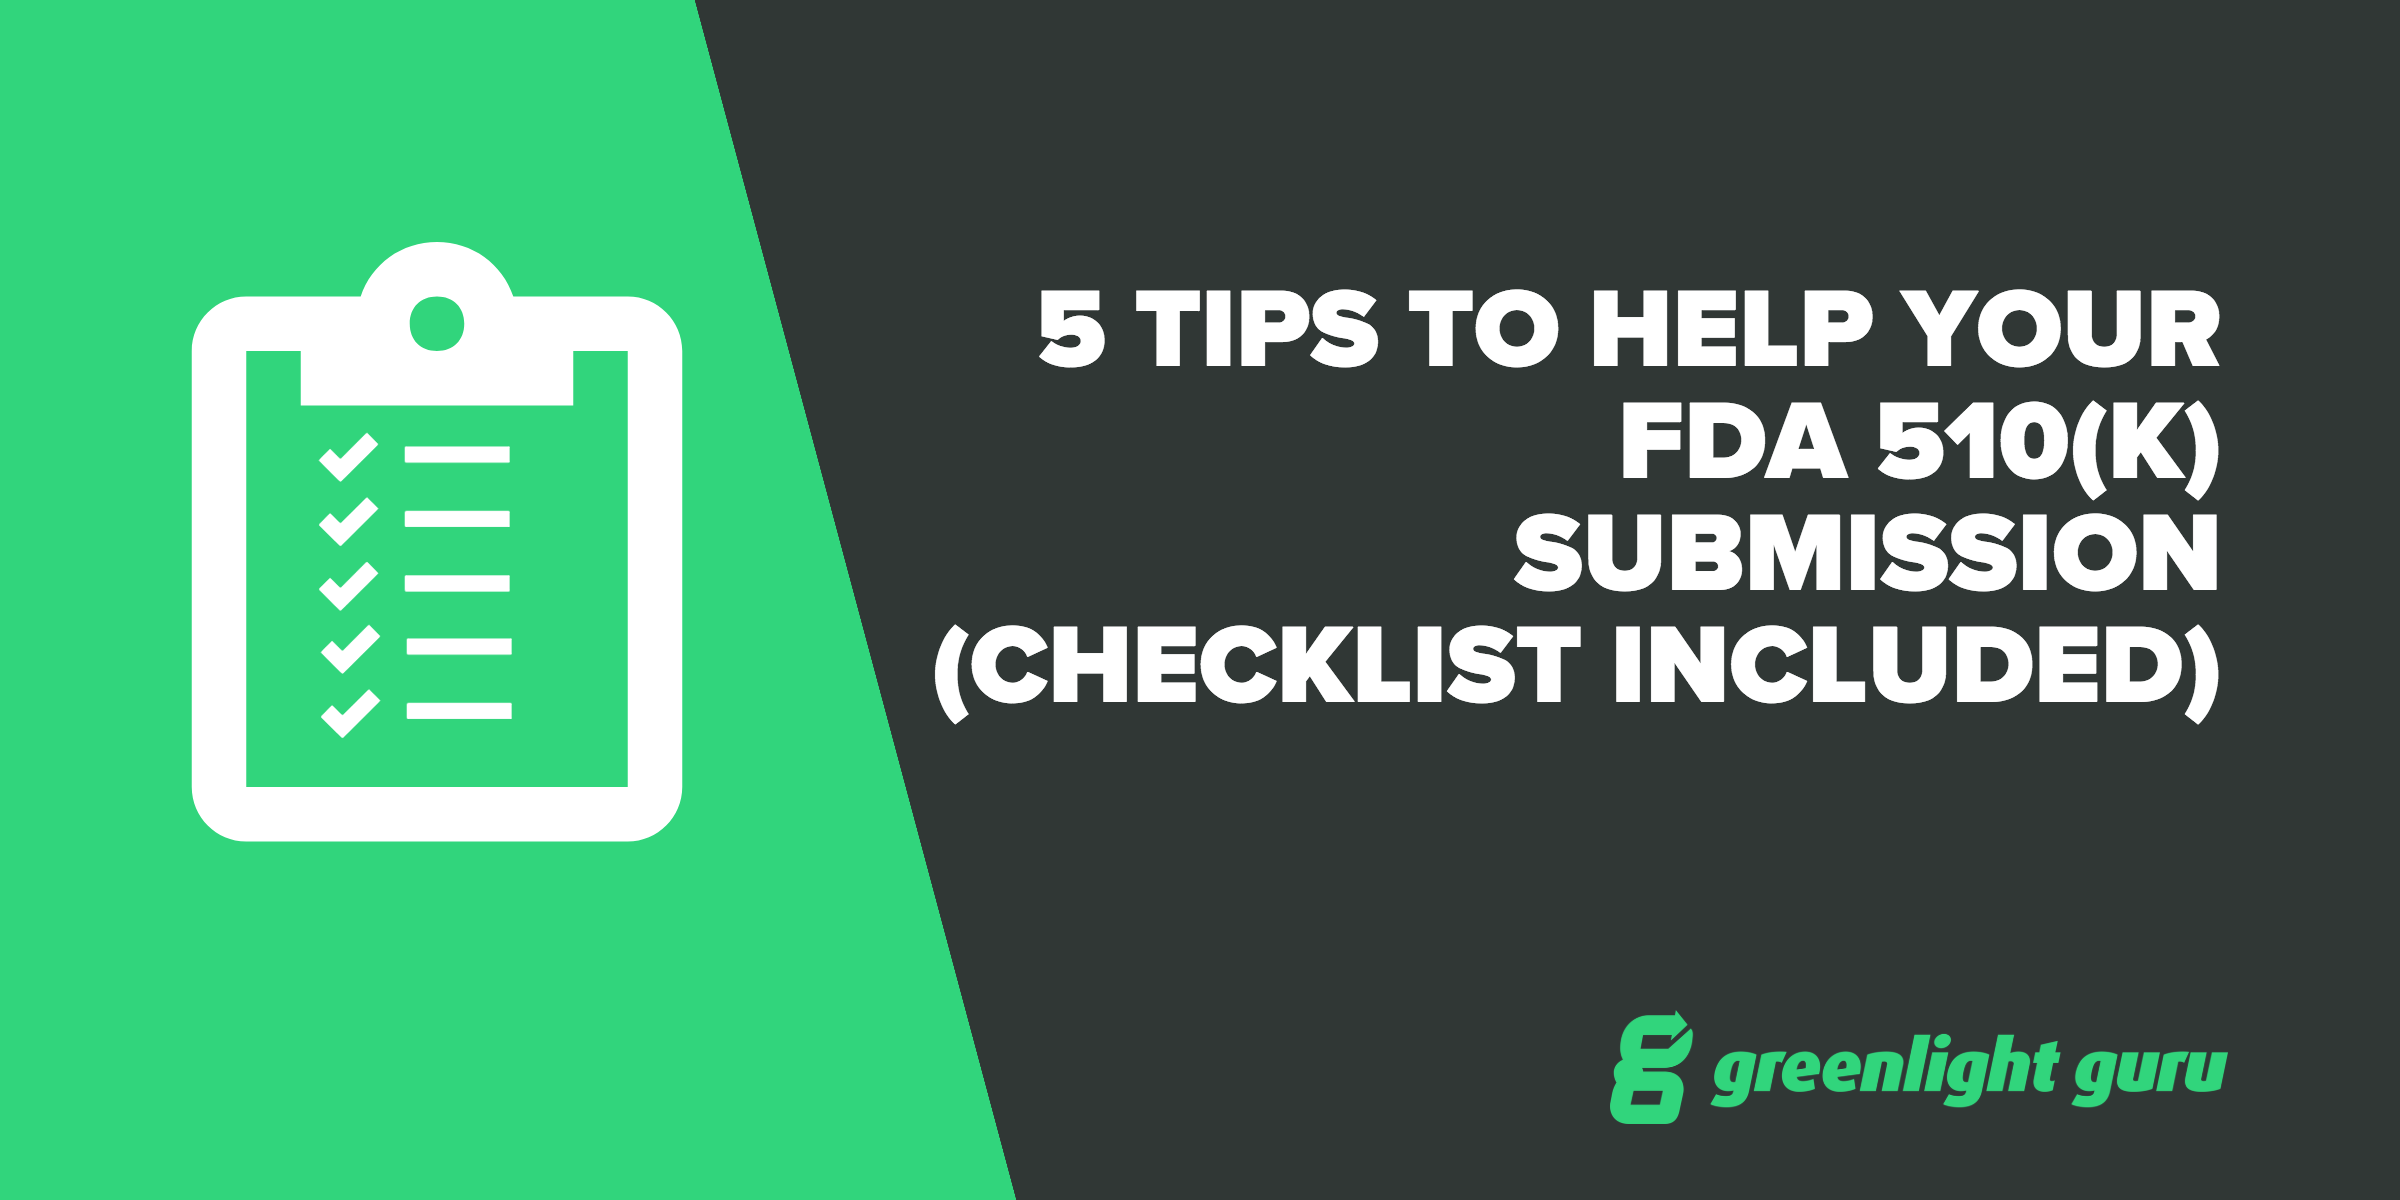 5 Tips to Help Your FDA 510(k) Submission (checklist included) - Featured Image